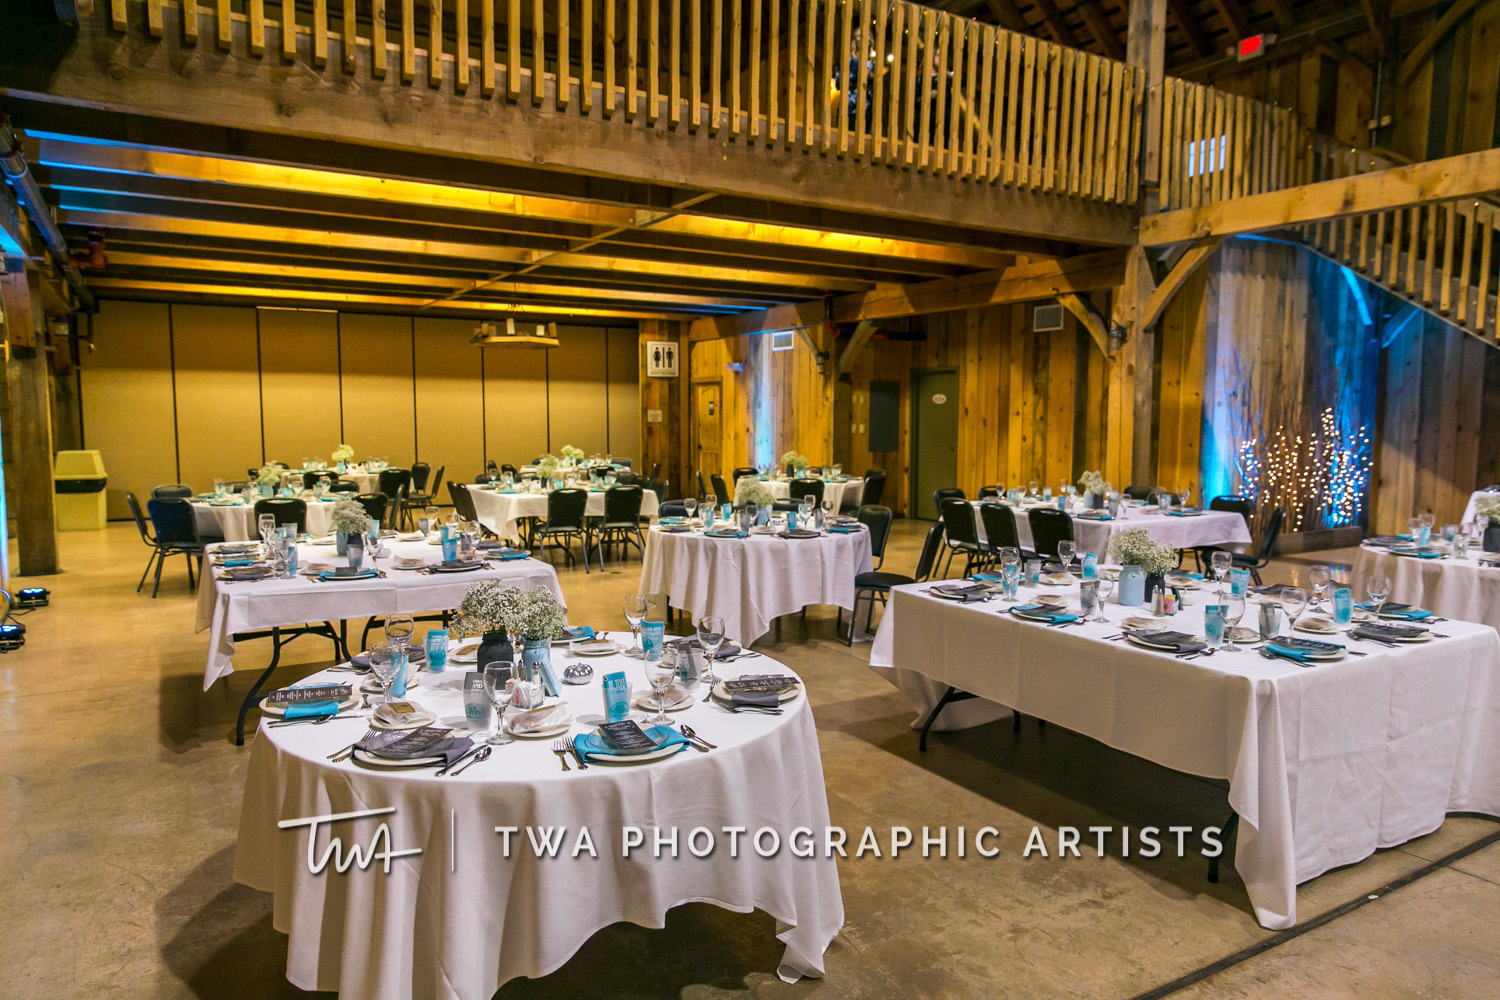 Chicago-Wedding-Photographer-TWA-Photographic-Artists-County-Line-Orchard_Bomba_Purcell_MiC_DR-0908